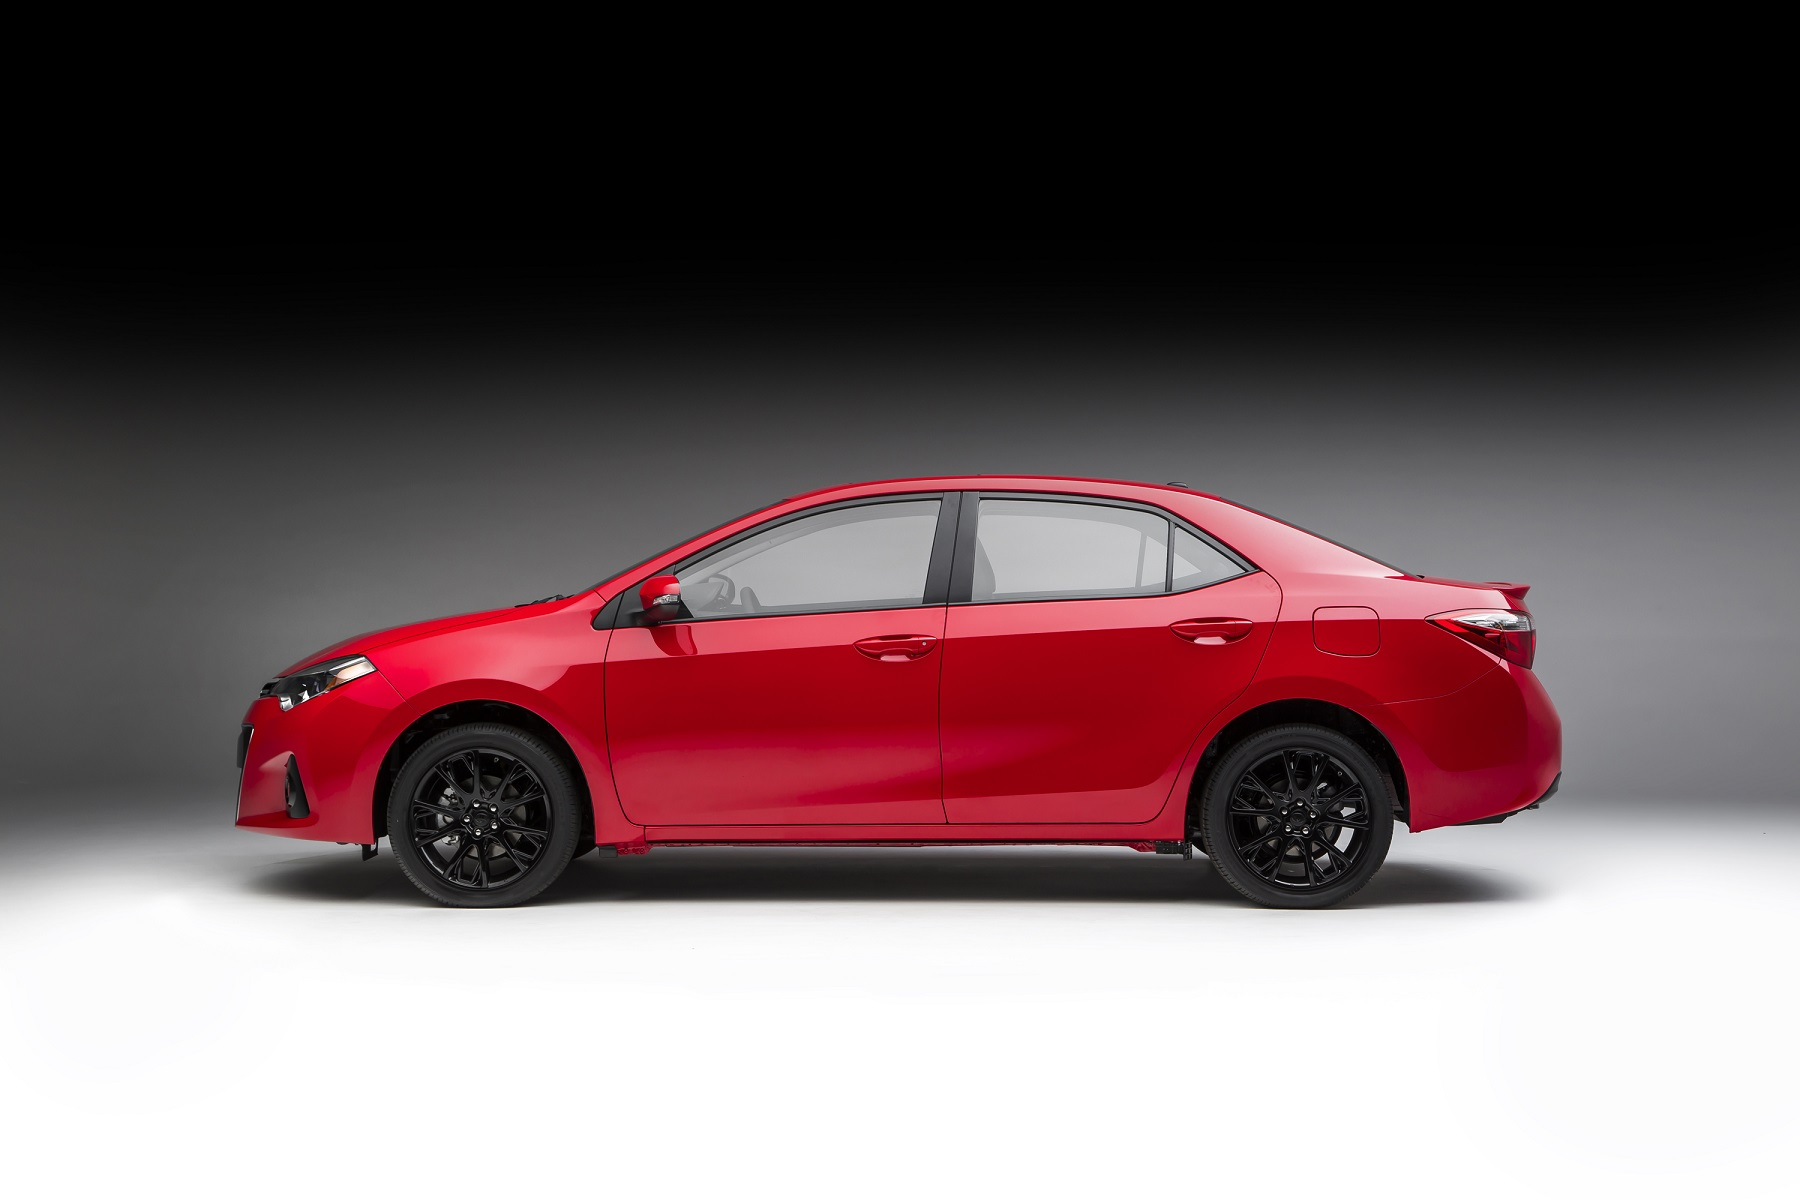 Blacked Out Corolla >> 50 Years of Toyota Corolla: A Special Edition - New on Wheels - - GrooveCar